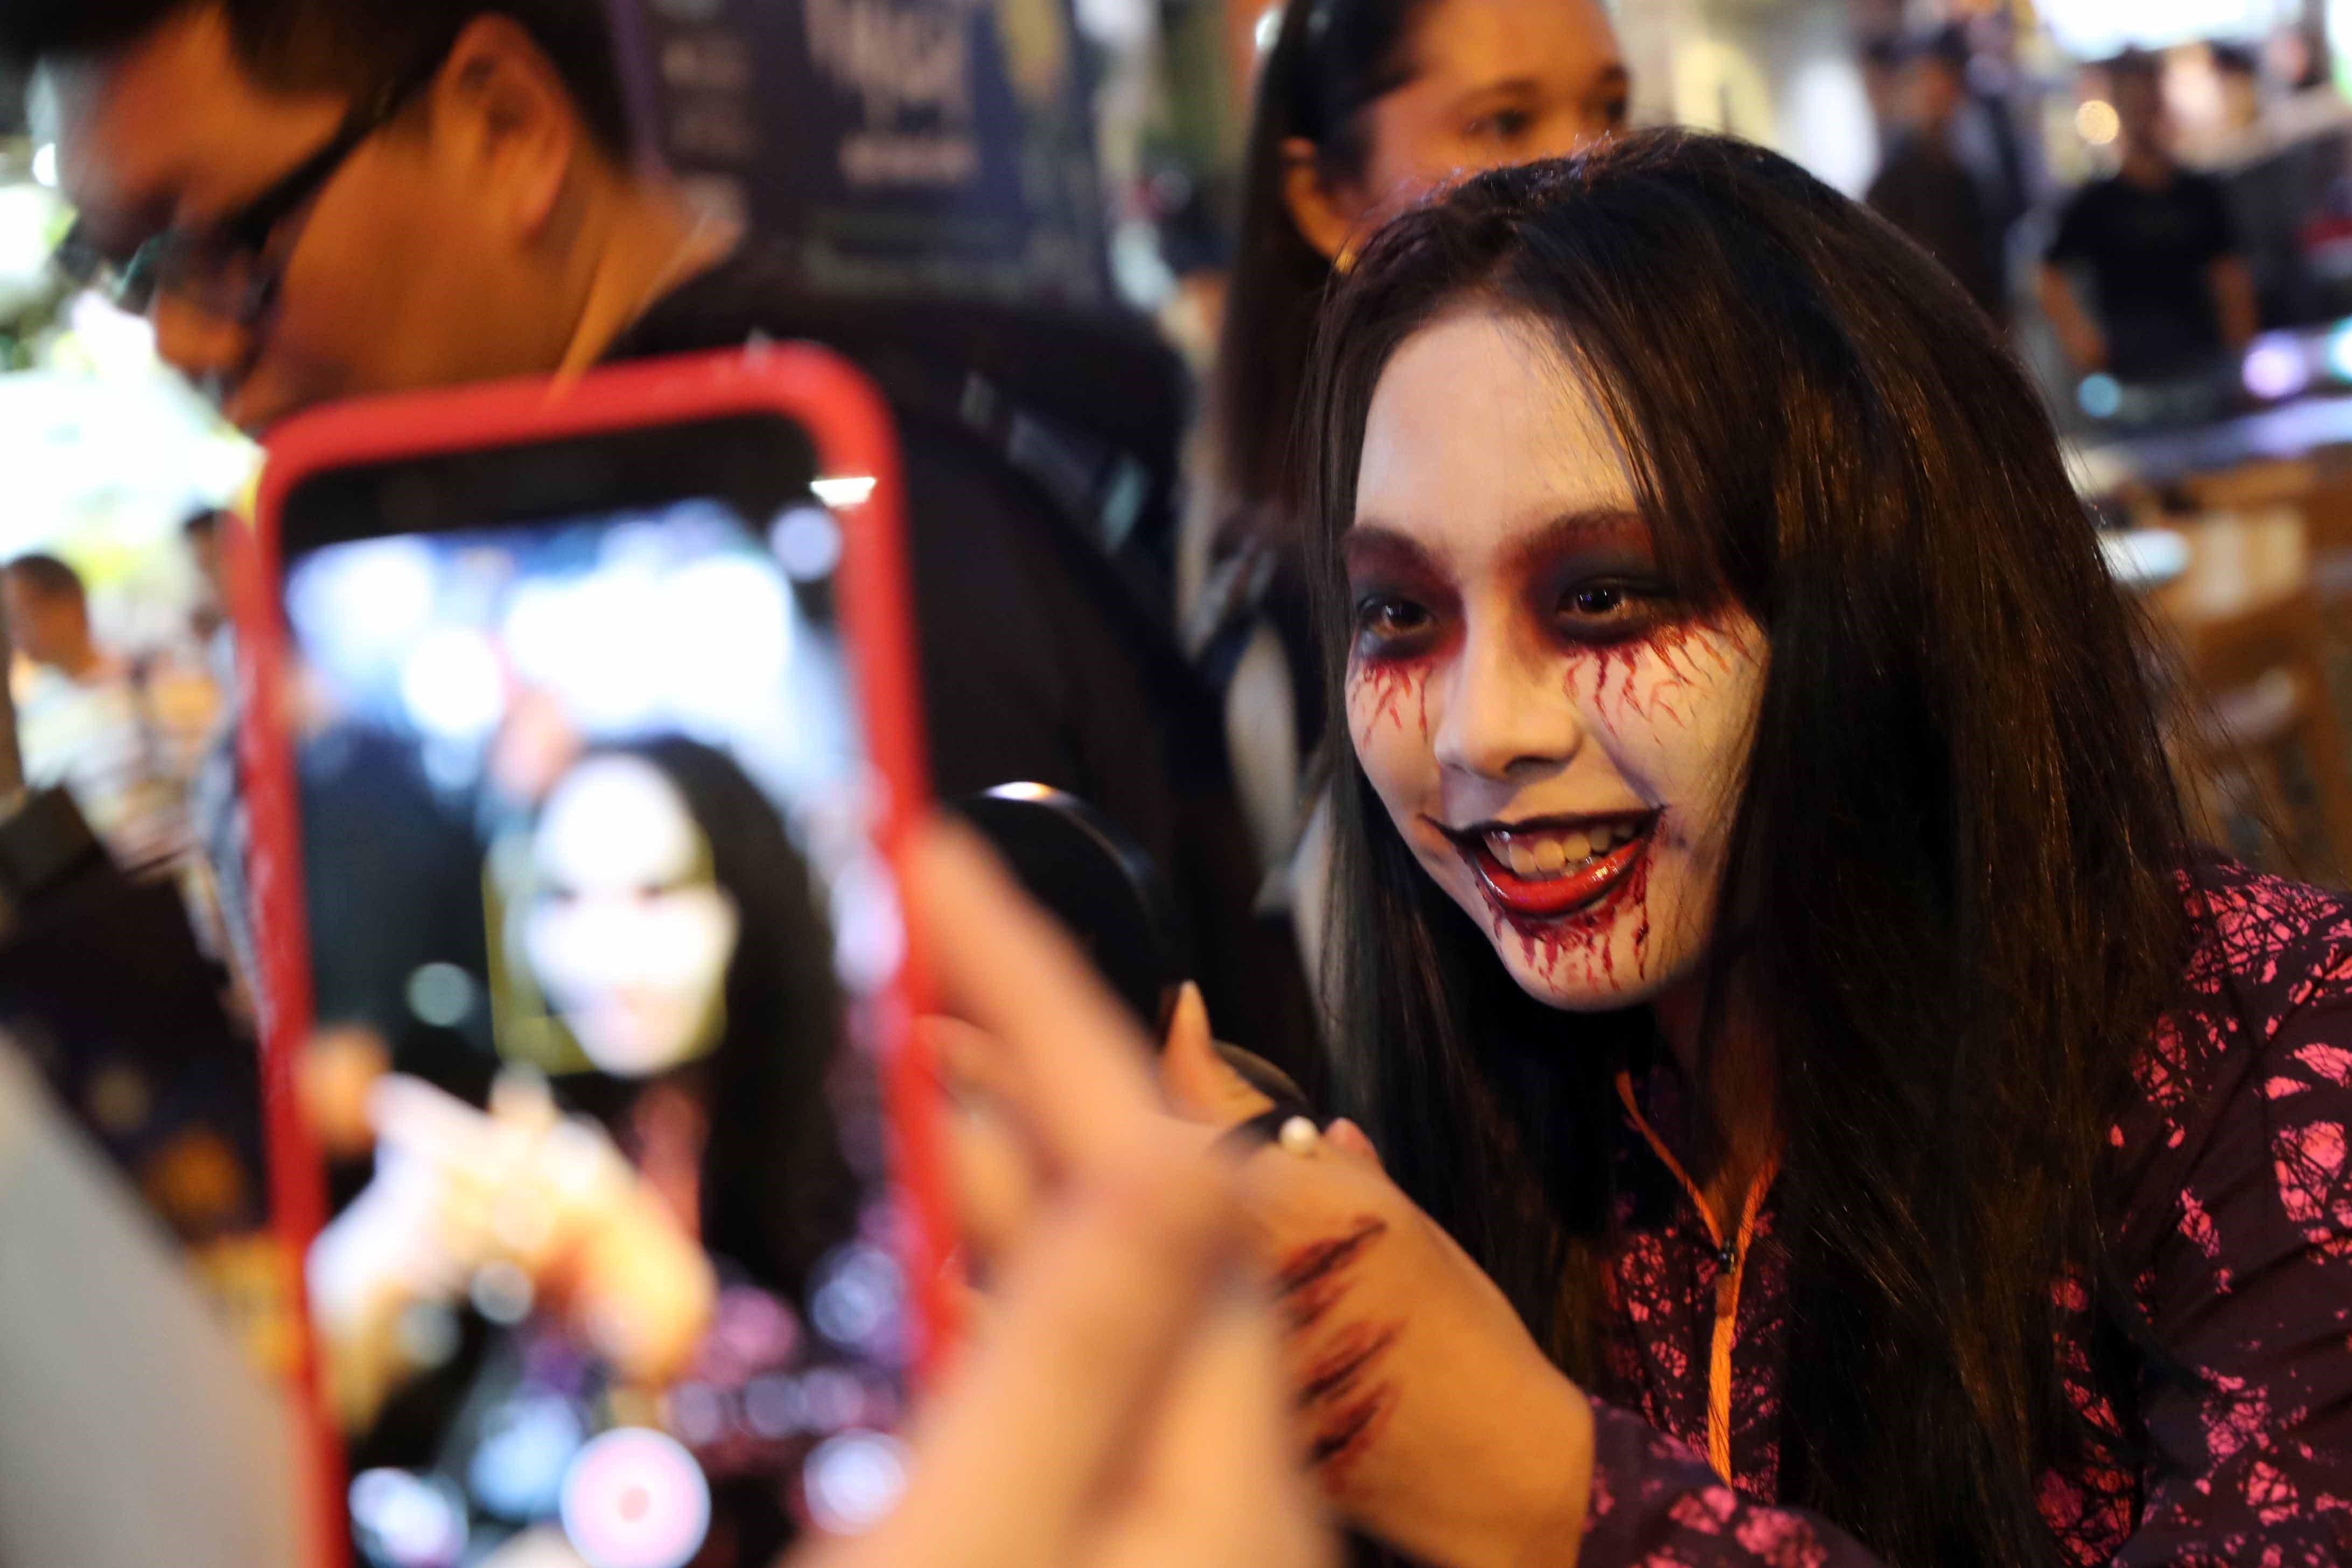 safety first at halloween parties | shanghai daily